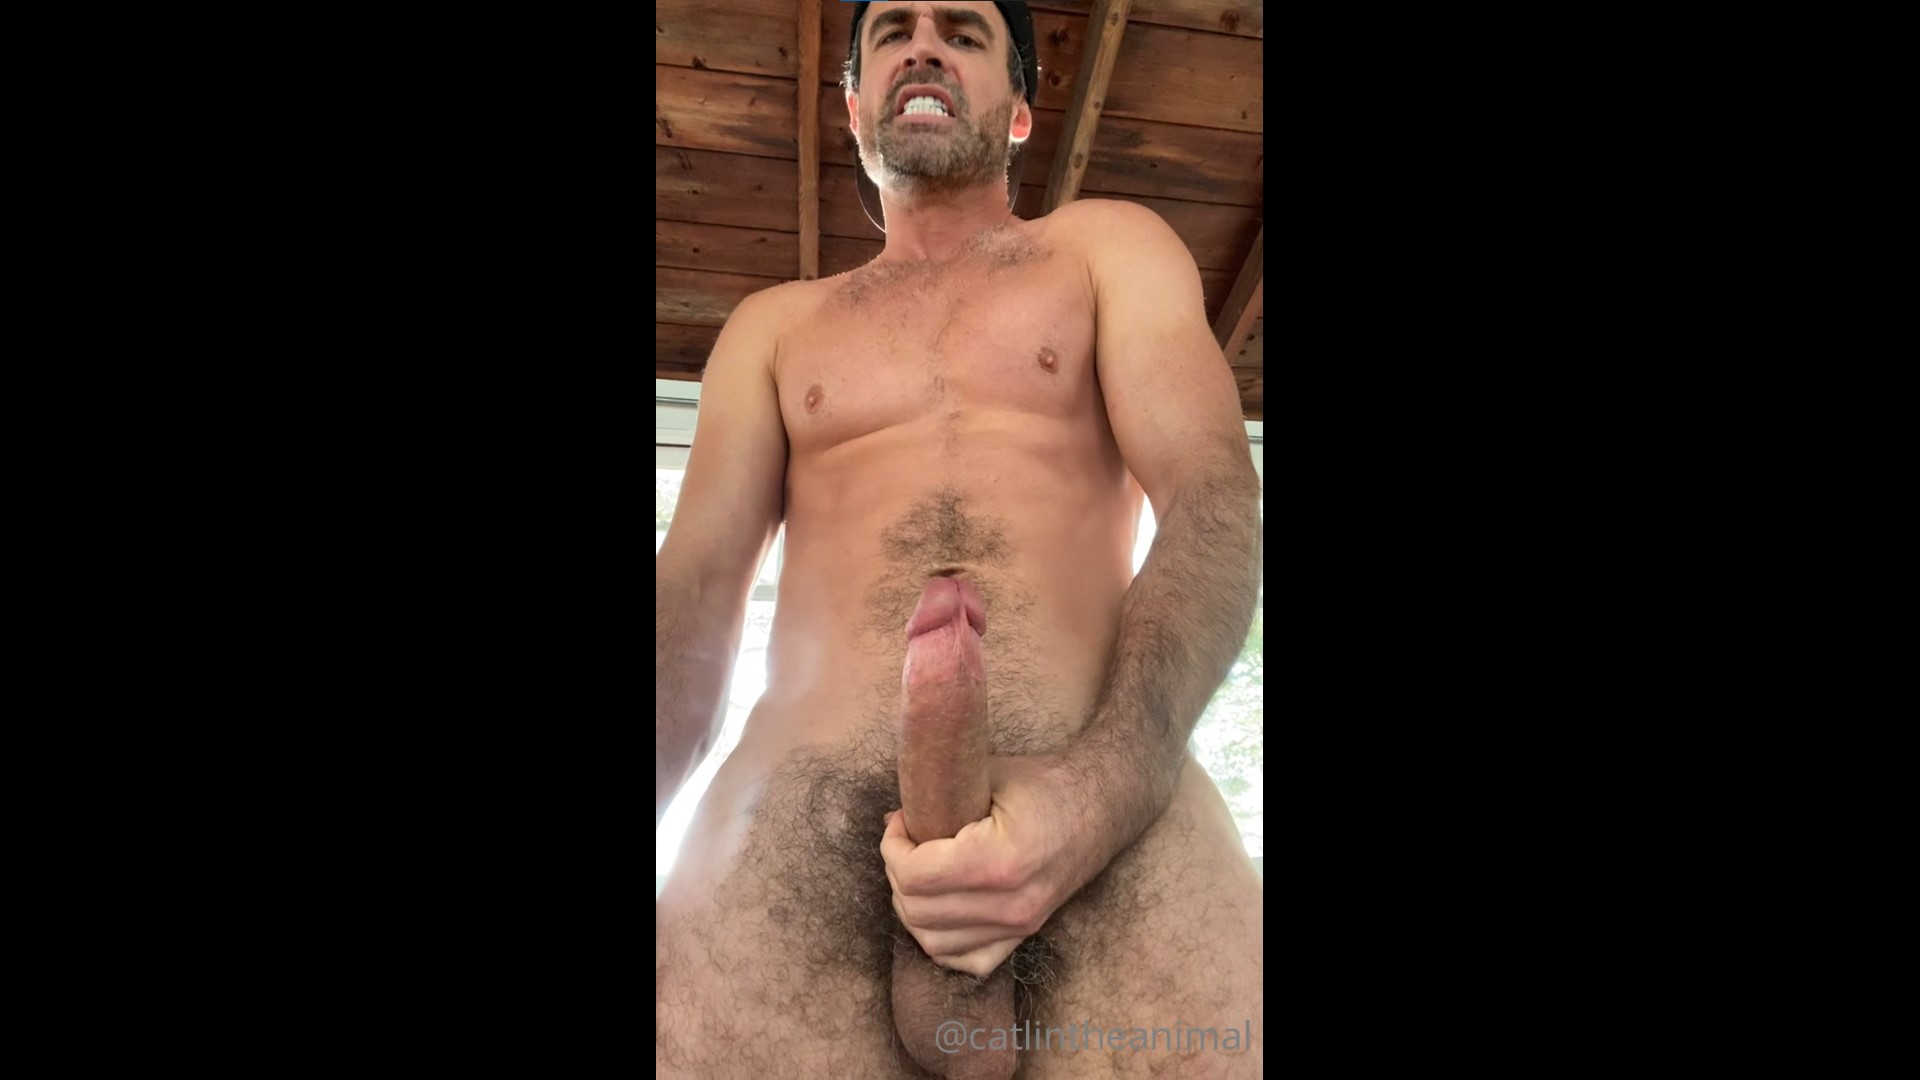 Jerking my morning wood and shooting a big load over myself - Andy Catlin (Catlintheanimal)